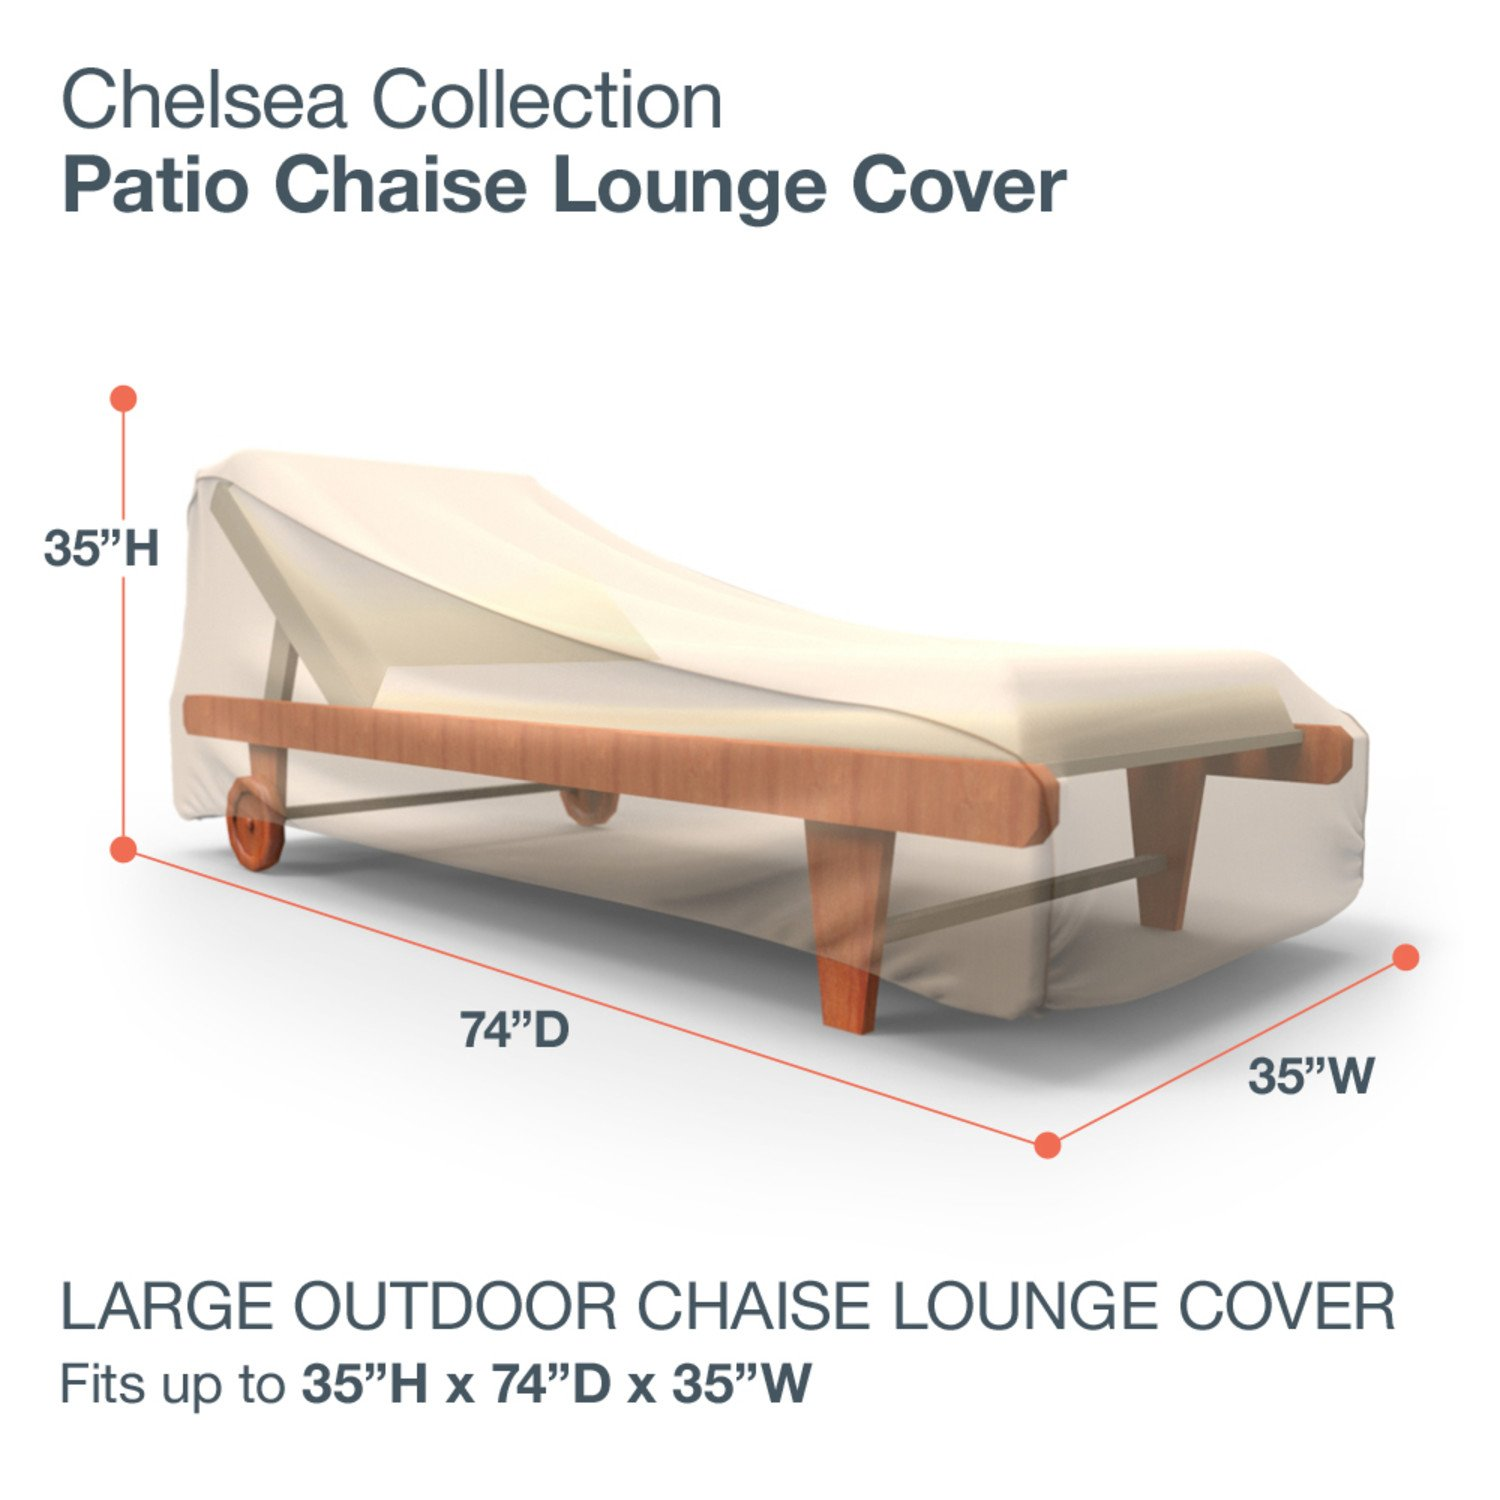 Budge Chelsea Patio Chaise Lounge Cover, Large Tan